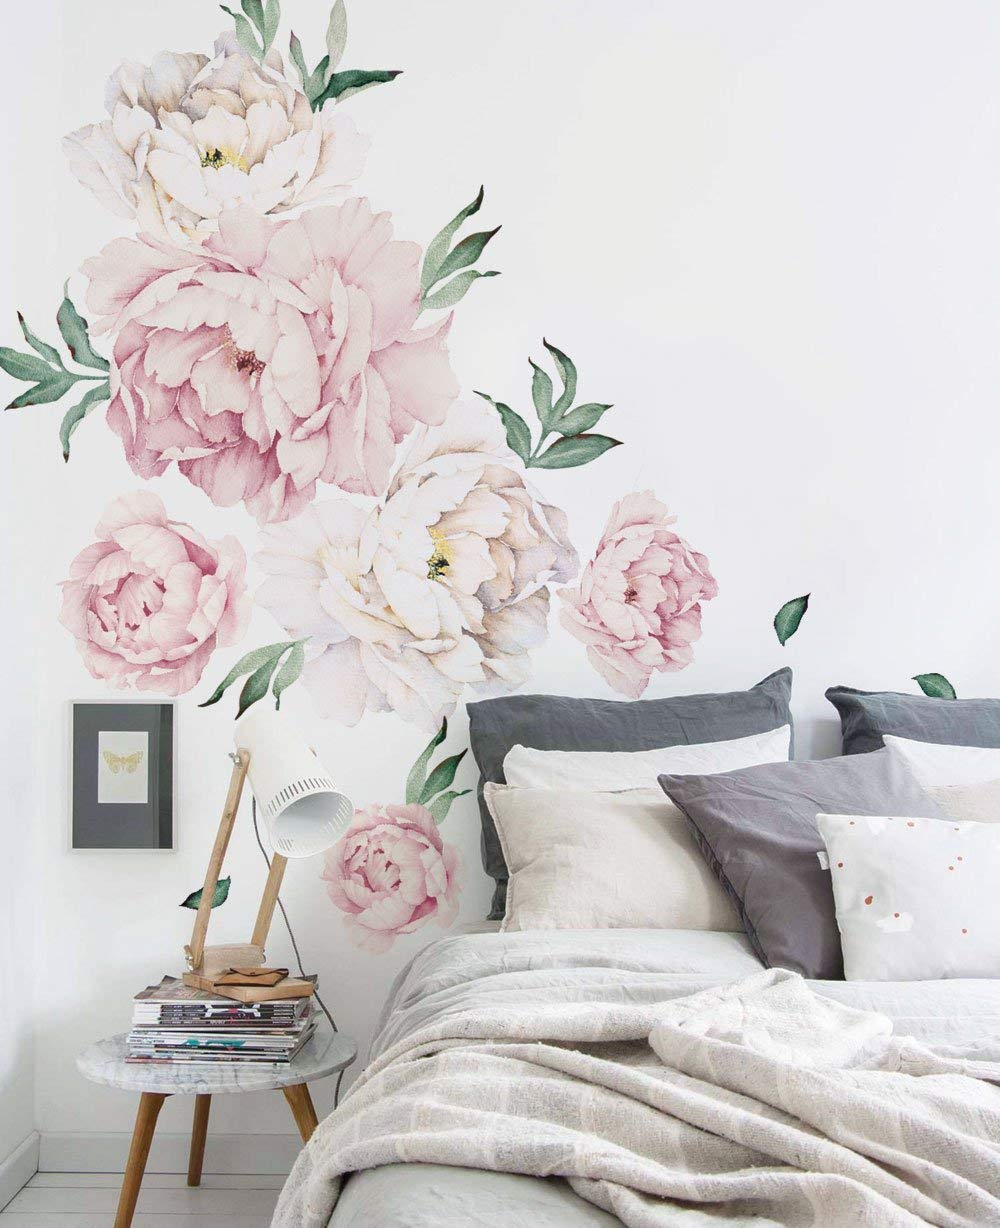 Simple Shapes Peony Flowers Wall Sticker - Vintage Pink by Simple Shapes